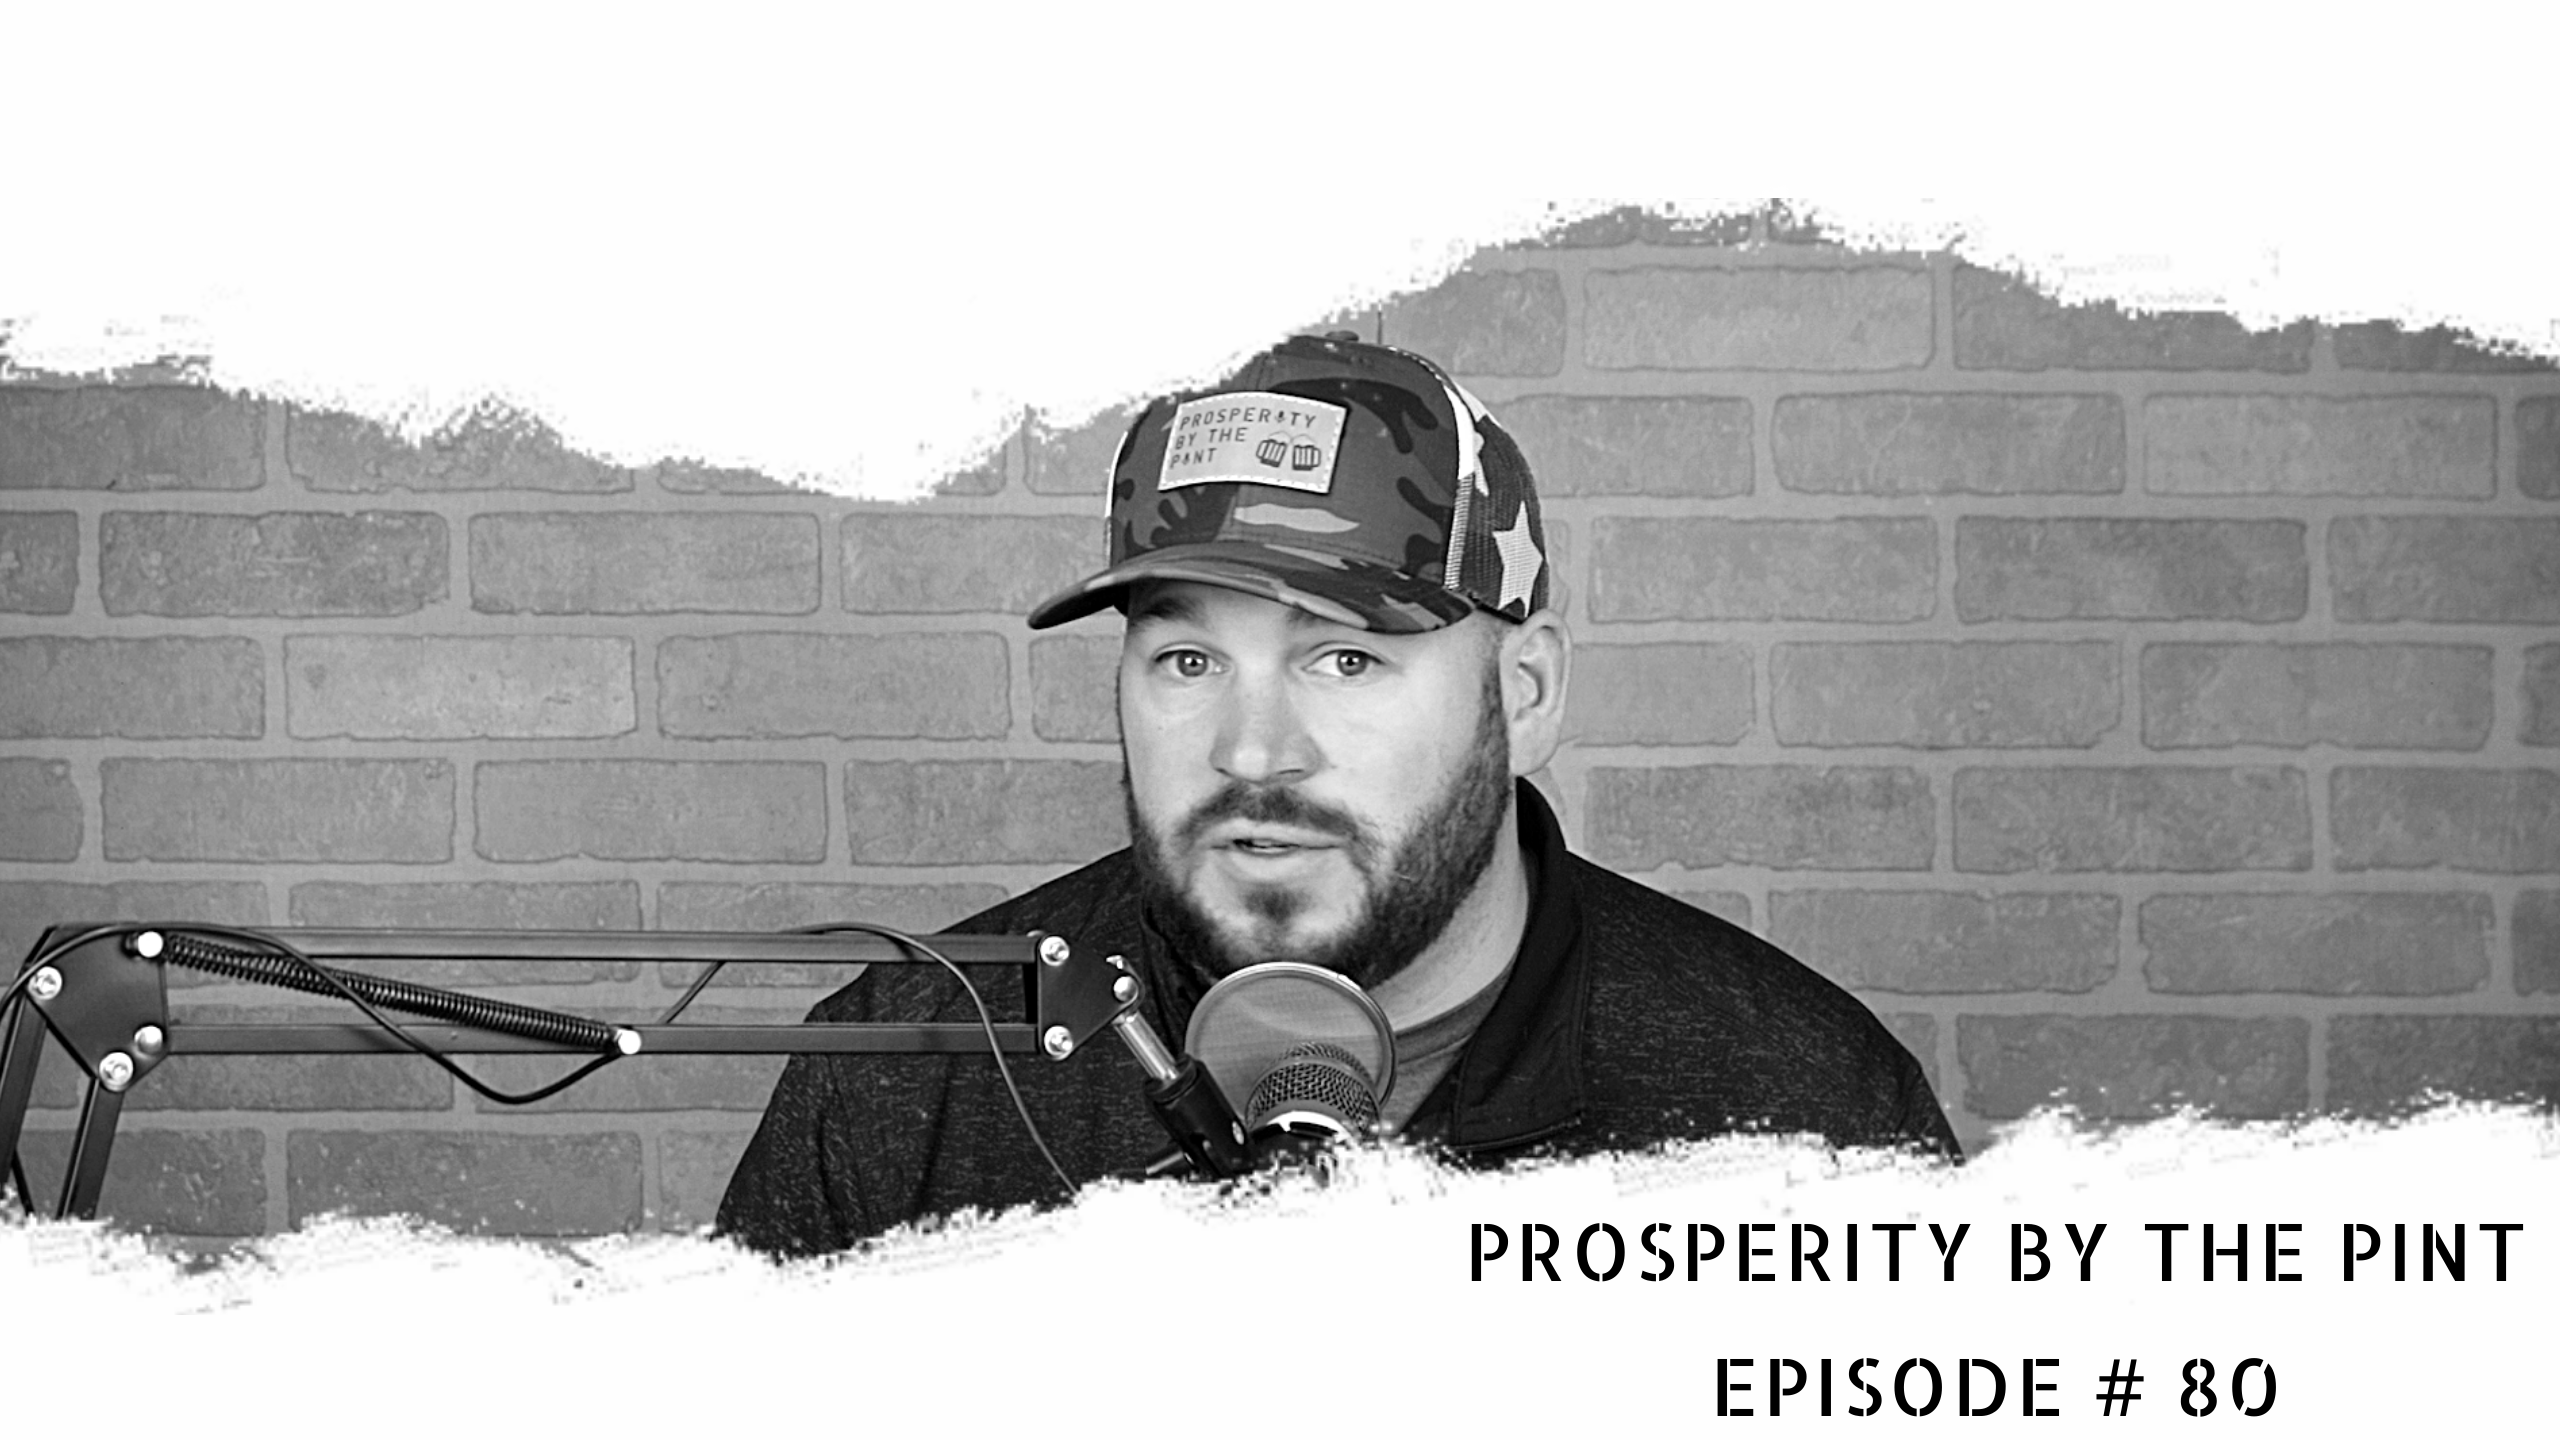 Episode #80: Corona Virus Crash Was It a Once-in-a-Lifetime Opportunity? Thumbnail